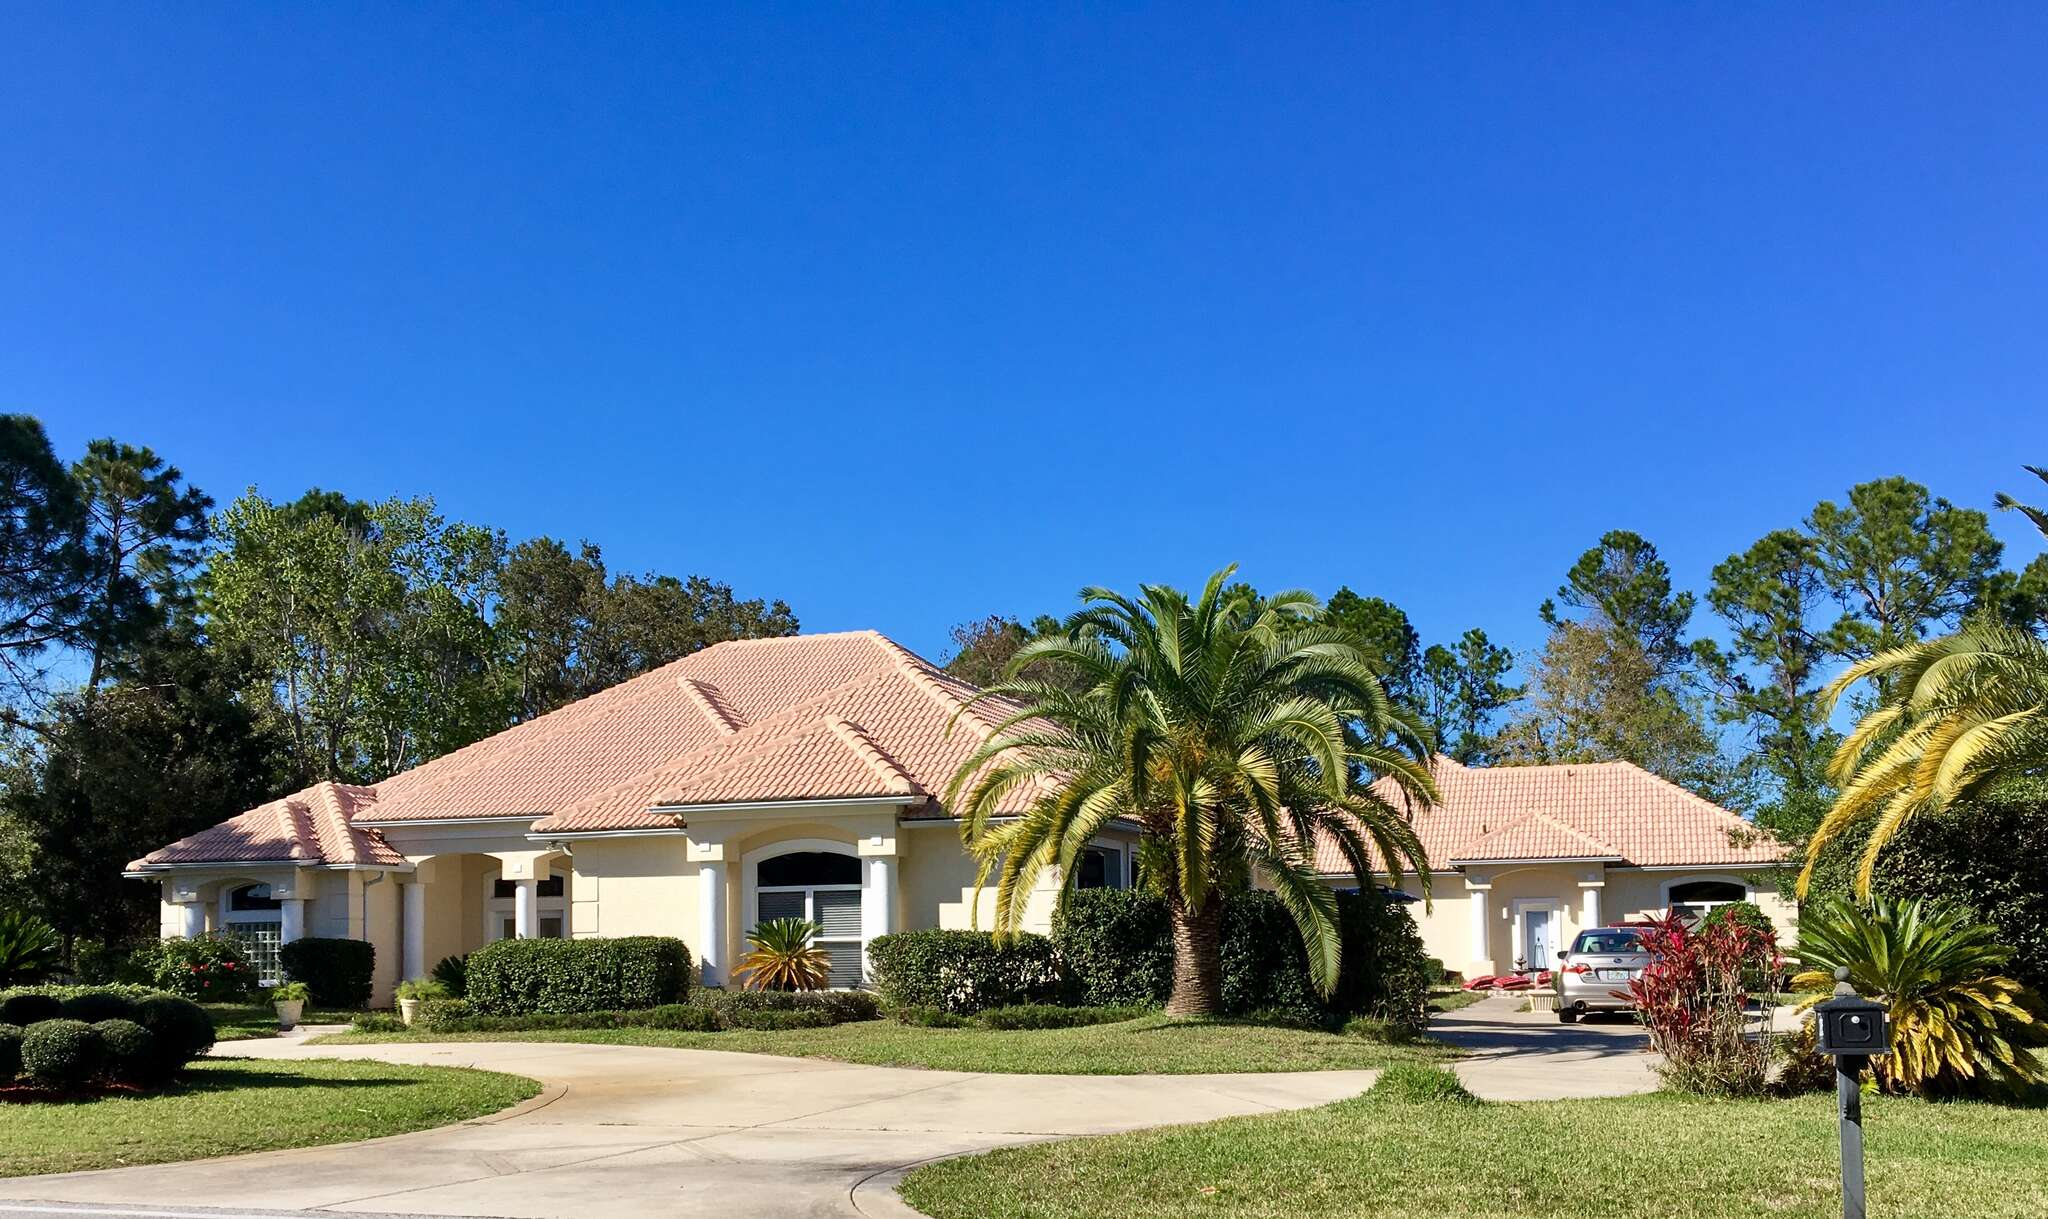 Single Family for Sale at 2795 Spruce Creek Blv Port Orange, Florida 32128 United States